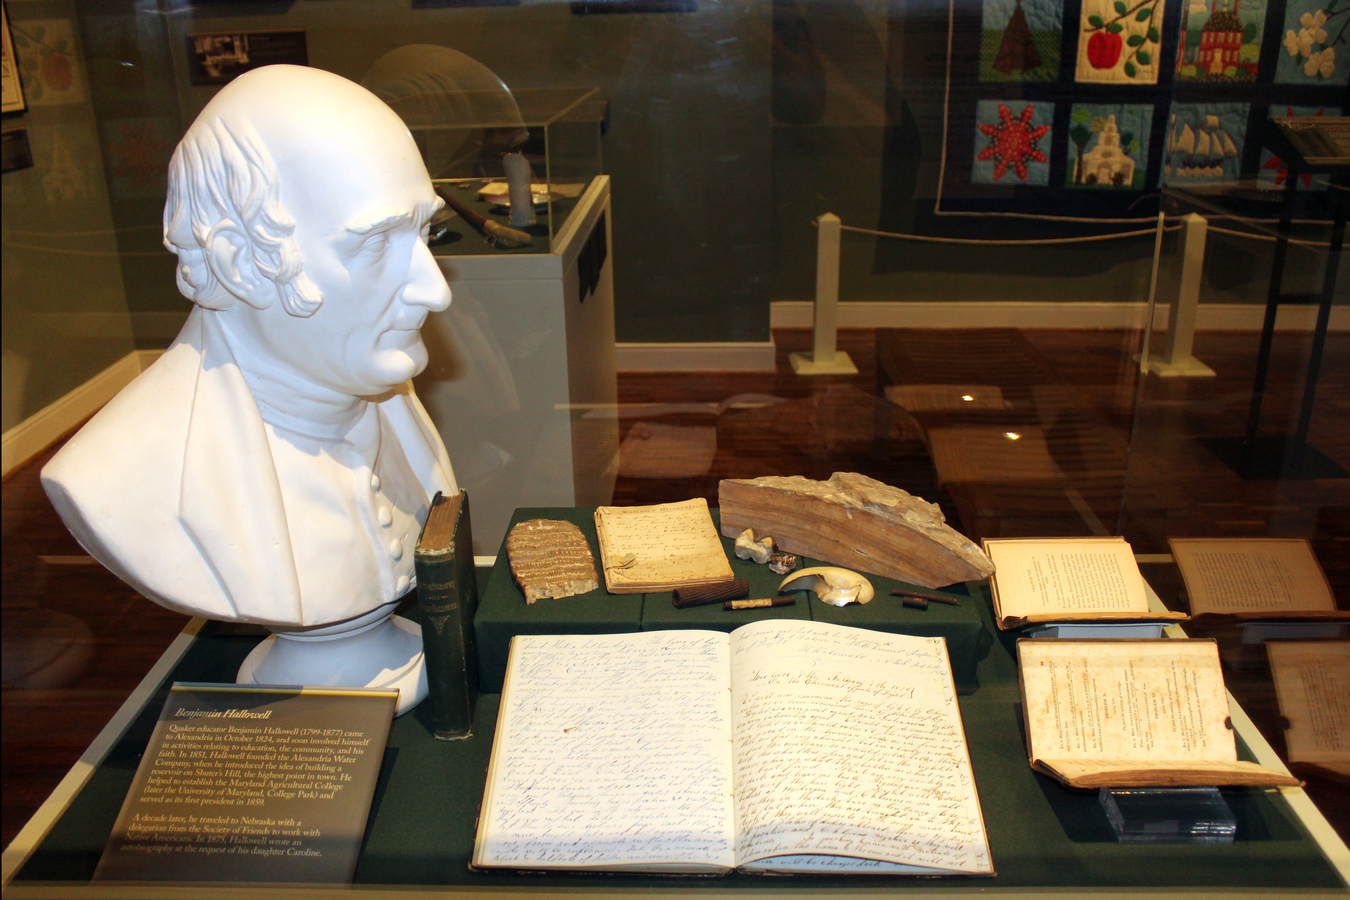 6 lyce 617 : Benjamin Hallowell one of the founders of The Lyceum and his personal journals